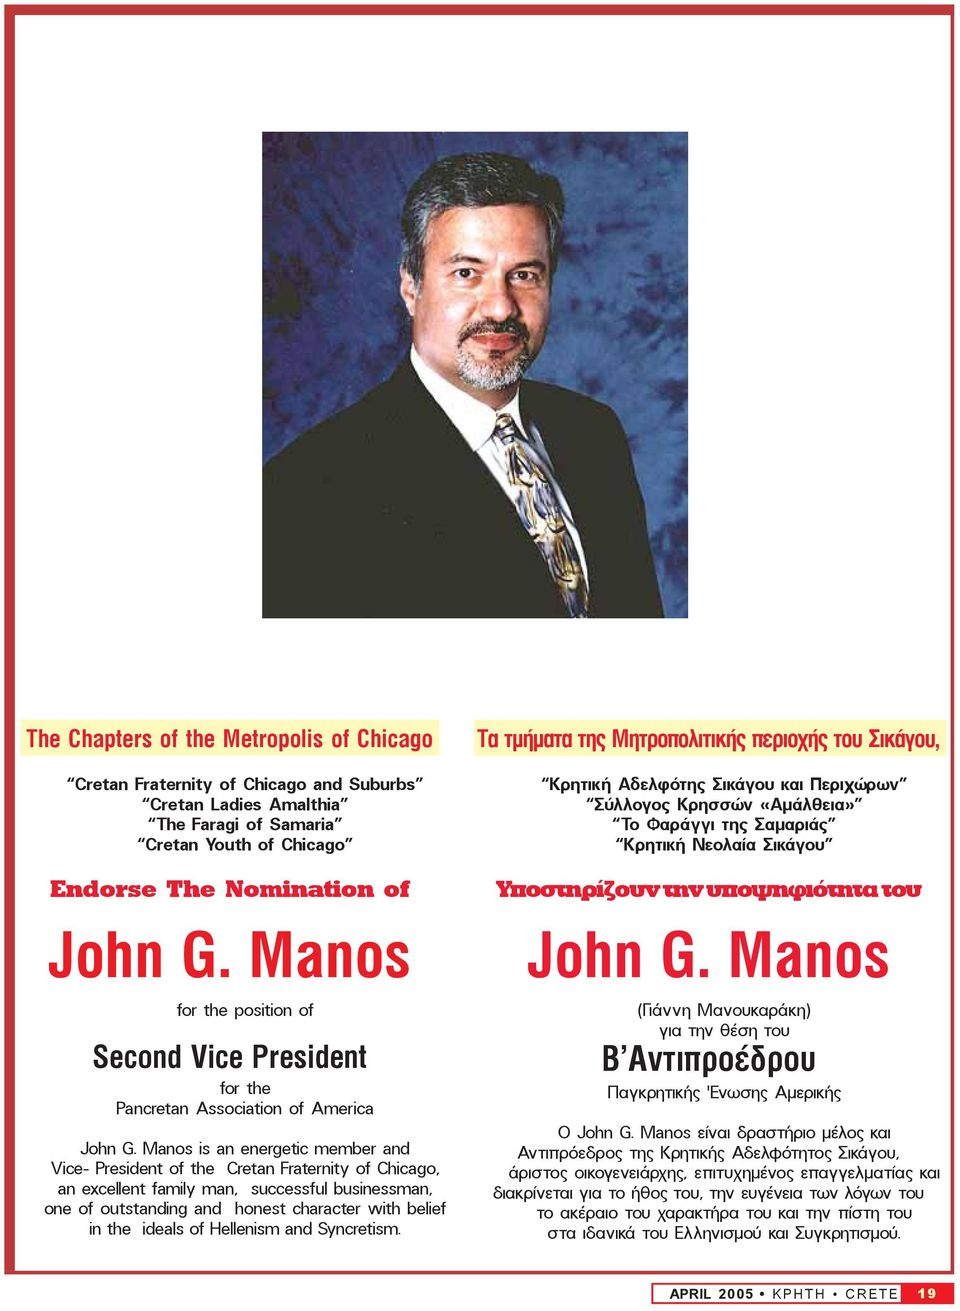 Manos is an energetic member and Vice- President of the Cretan Fraternity of Chicago, an excellent family man, successful businessman, one of outstanding and honest character with belief in the